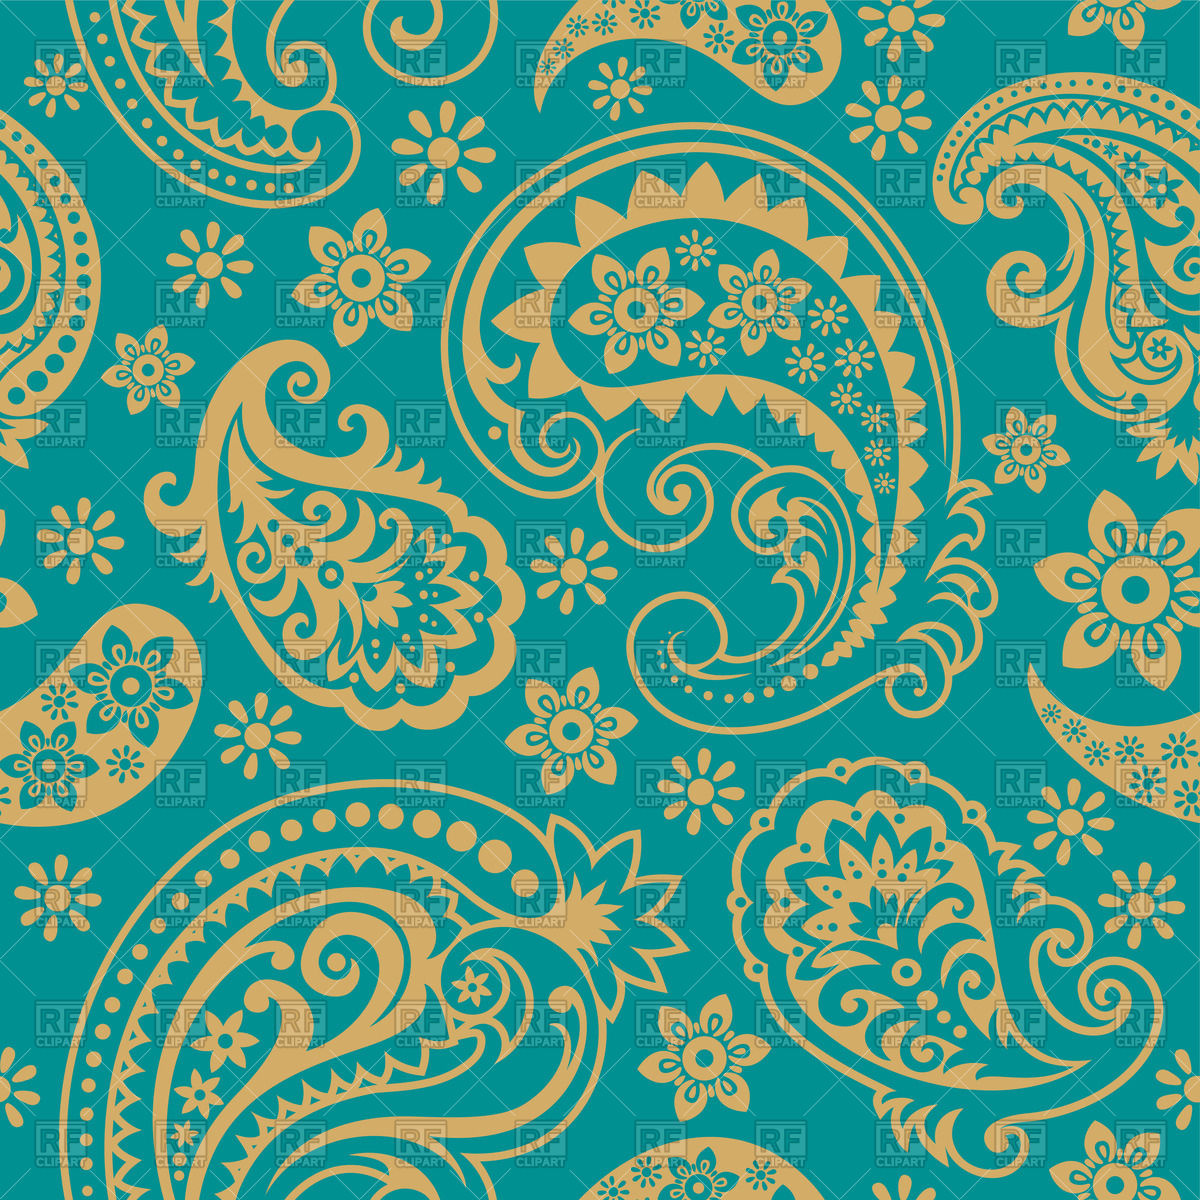 1200x1200 Seamless Paisley Ornament For Wallpaper Or Textile Vector Image